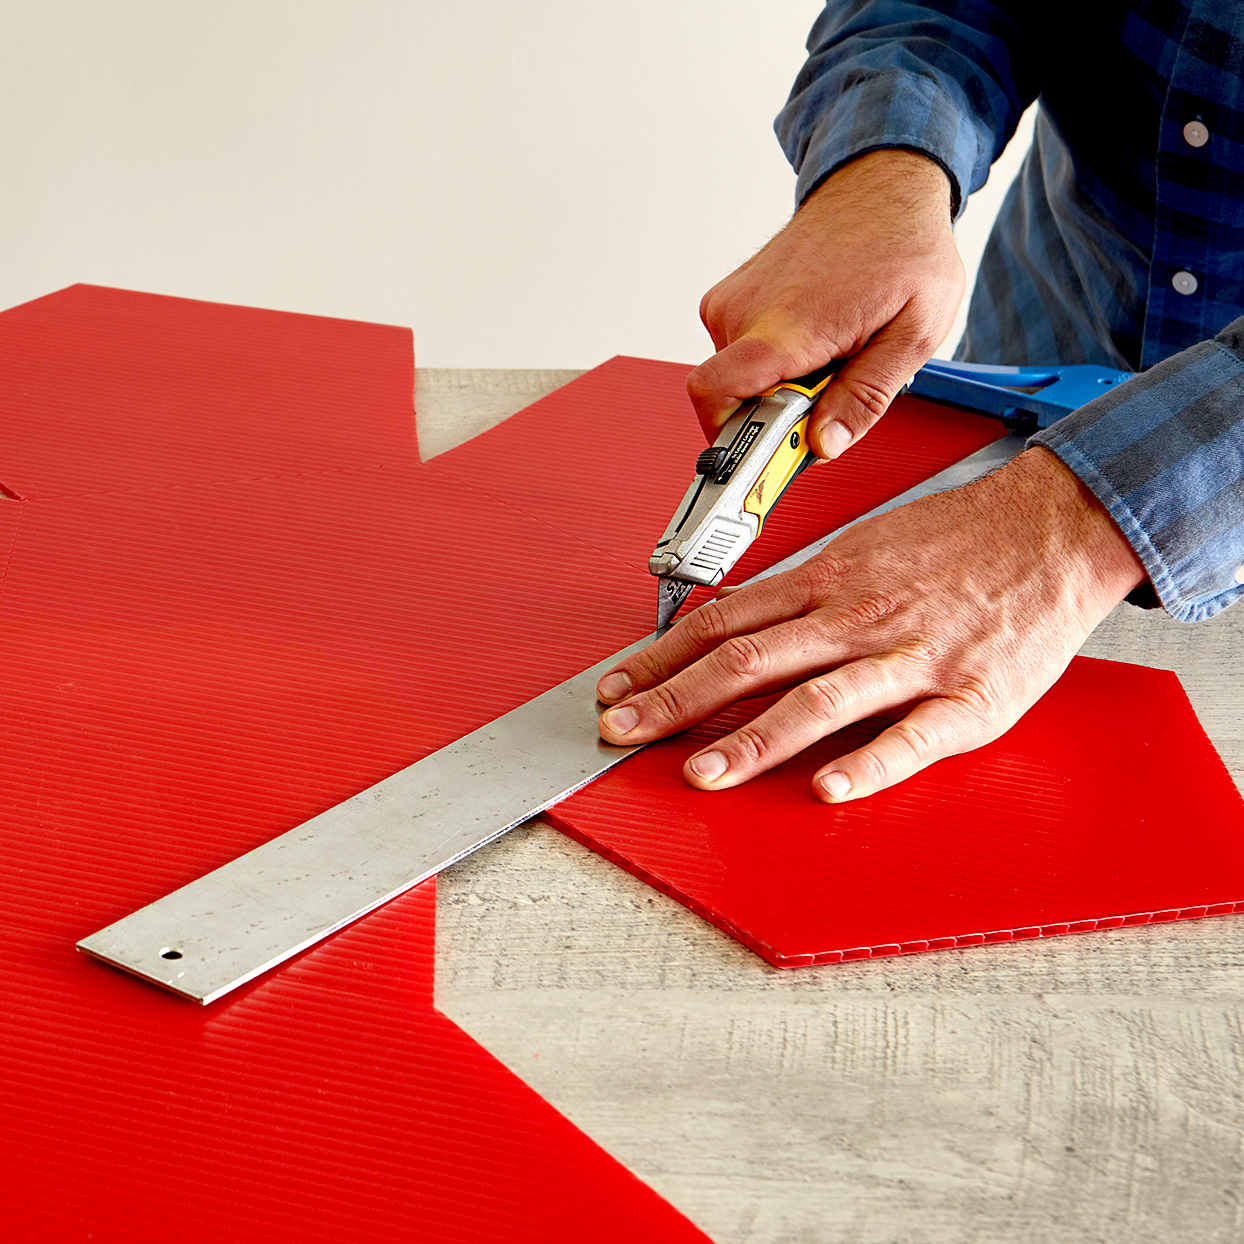 Person using box cutter on red pattern